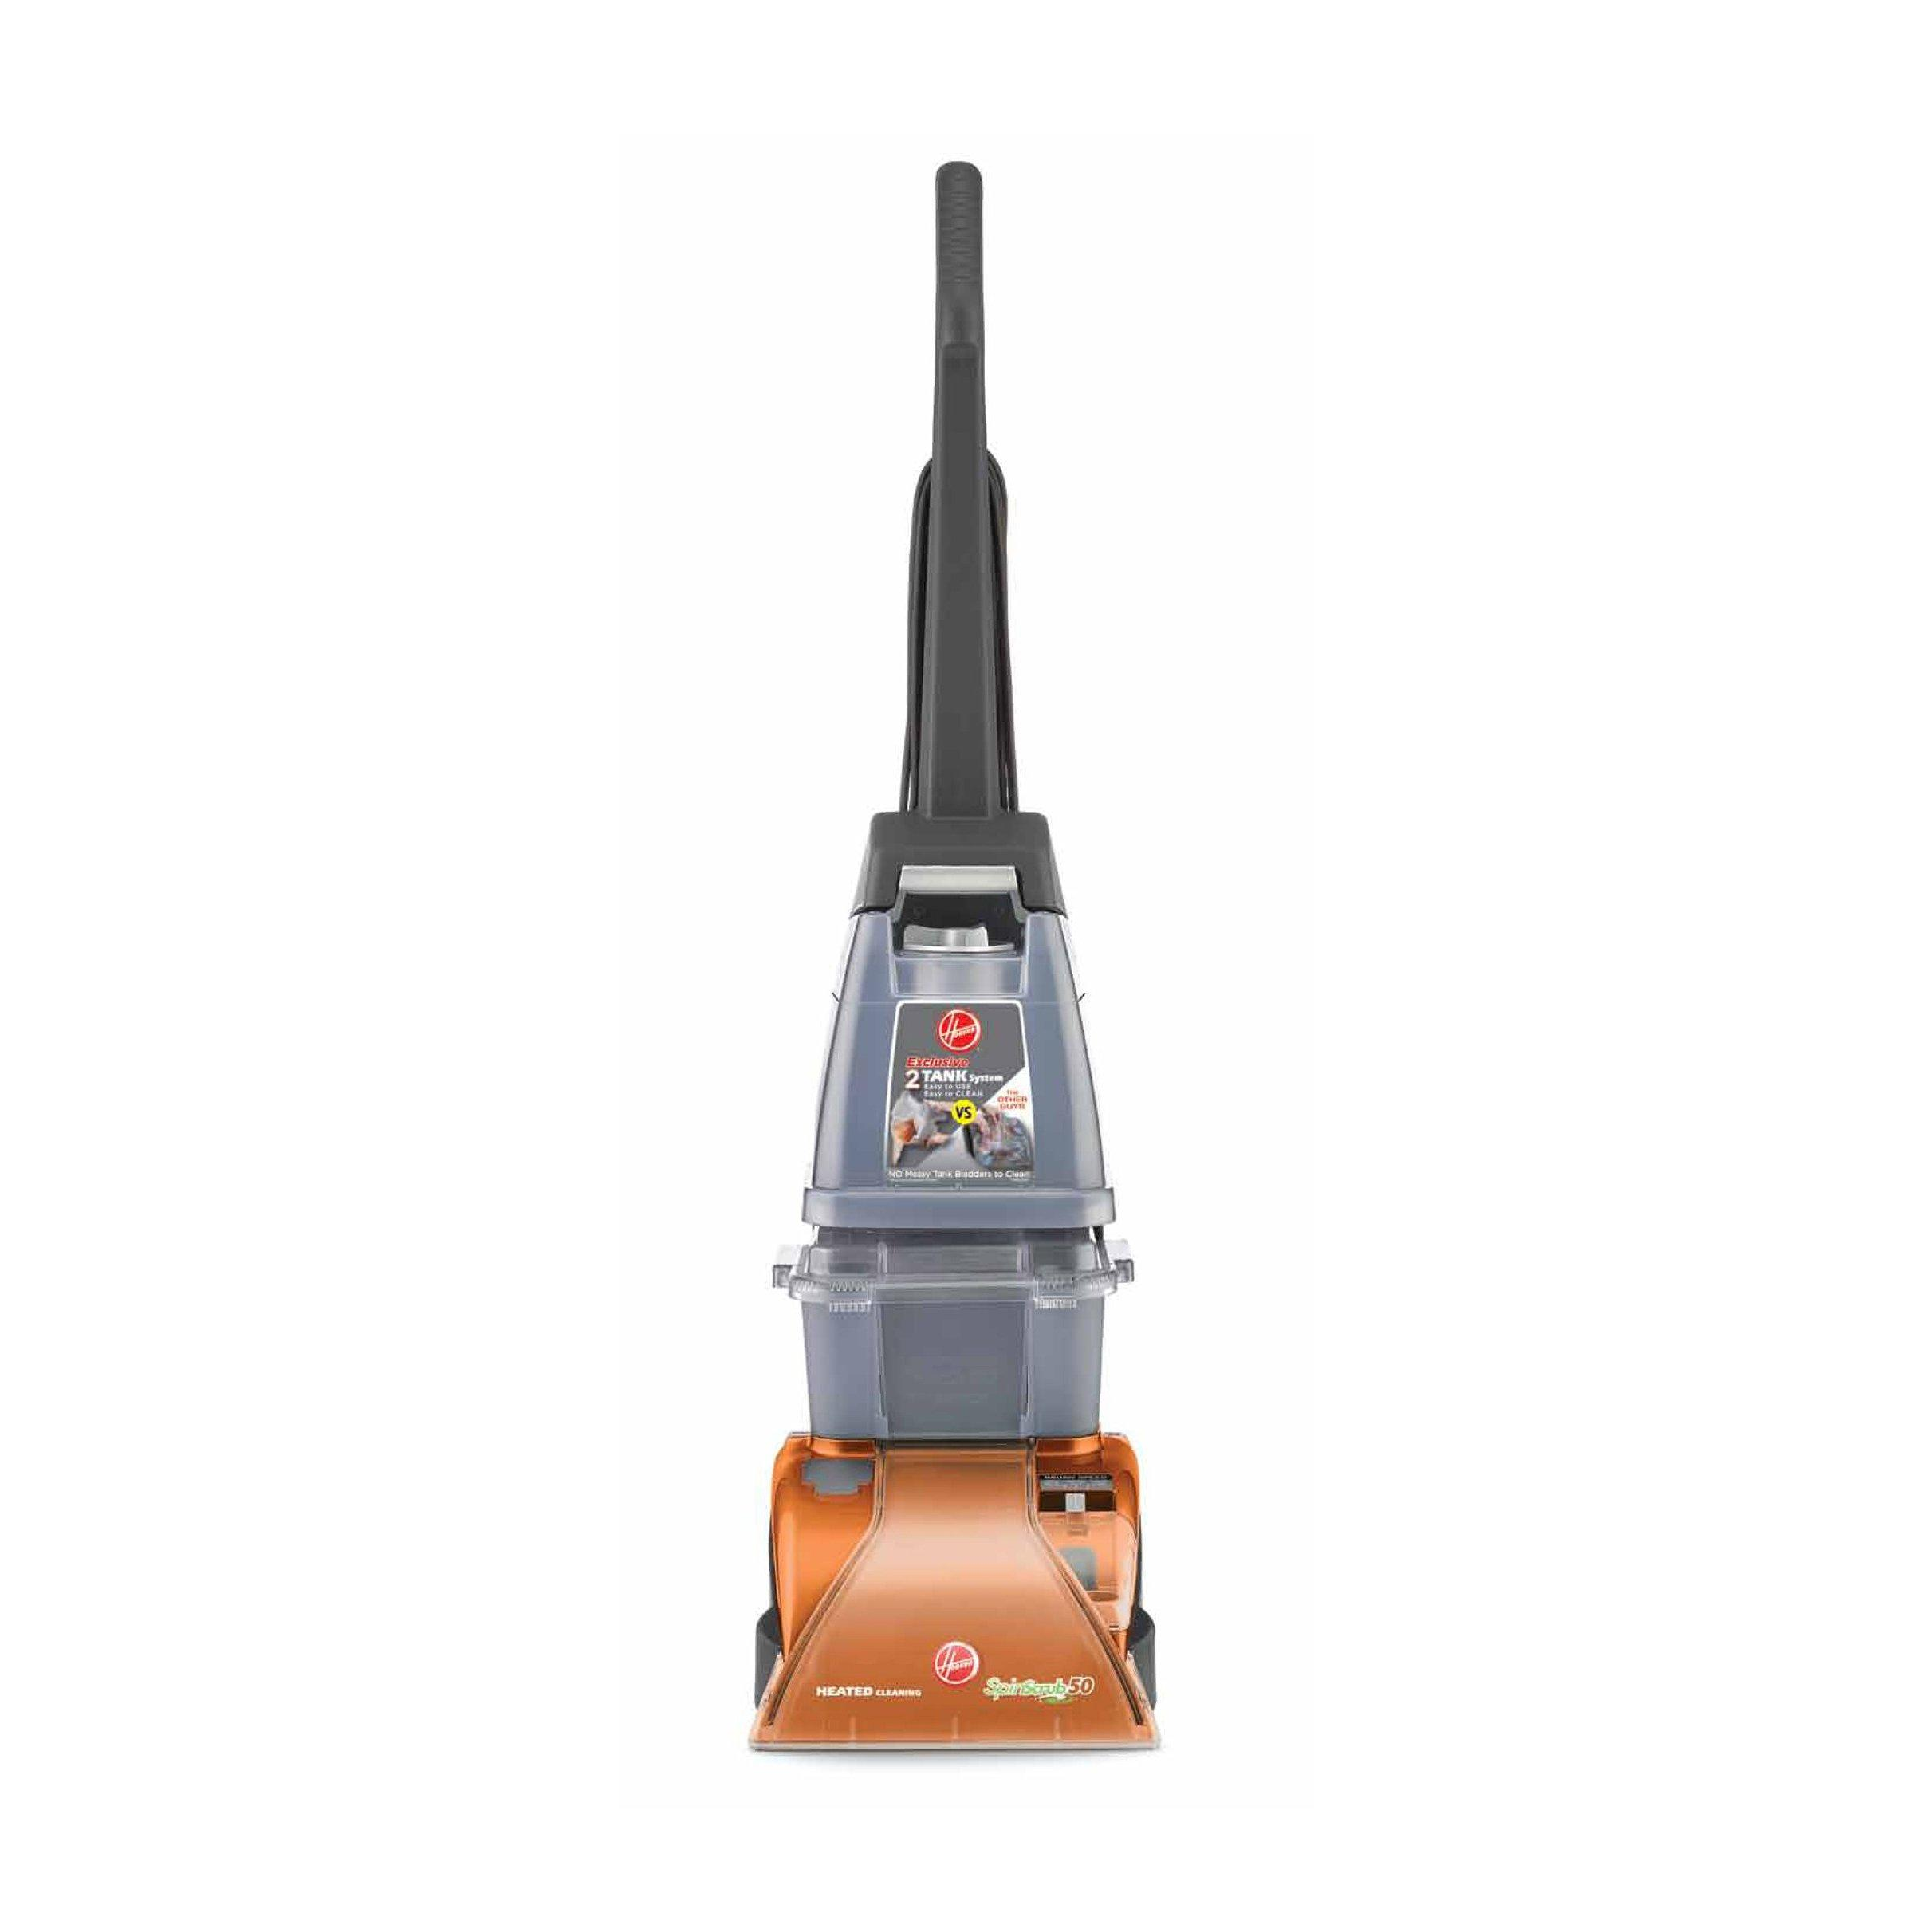 Reconditioned Steamvac Carpet Cleaner